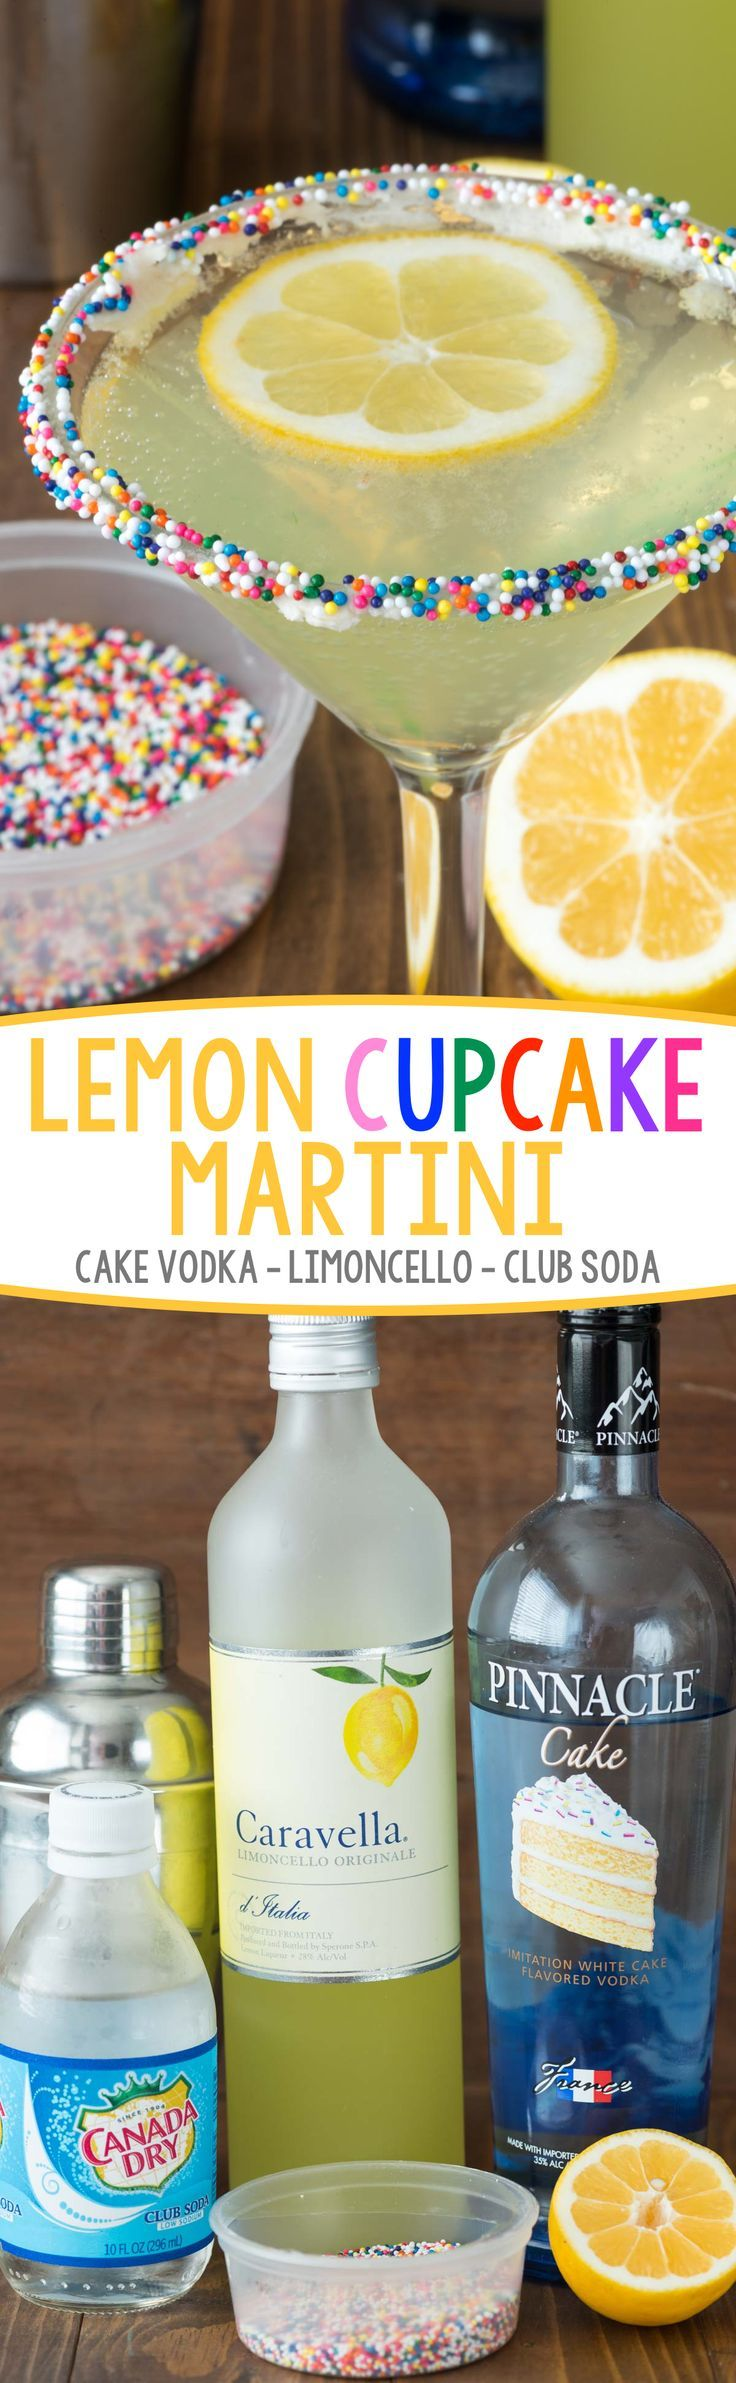 Lemon Cupcake Martini - only 3 ingredients in this easy martini recipe that…